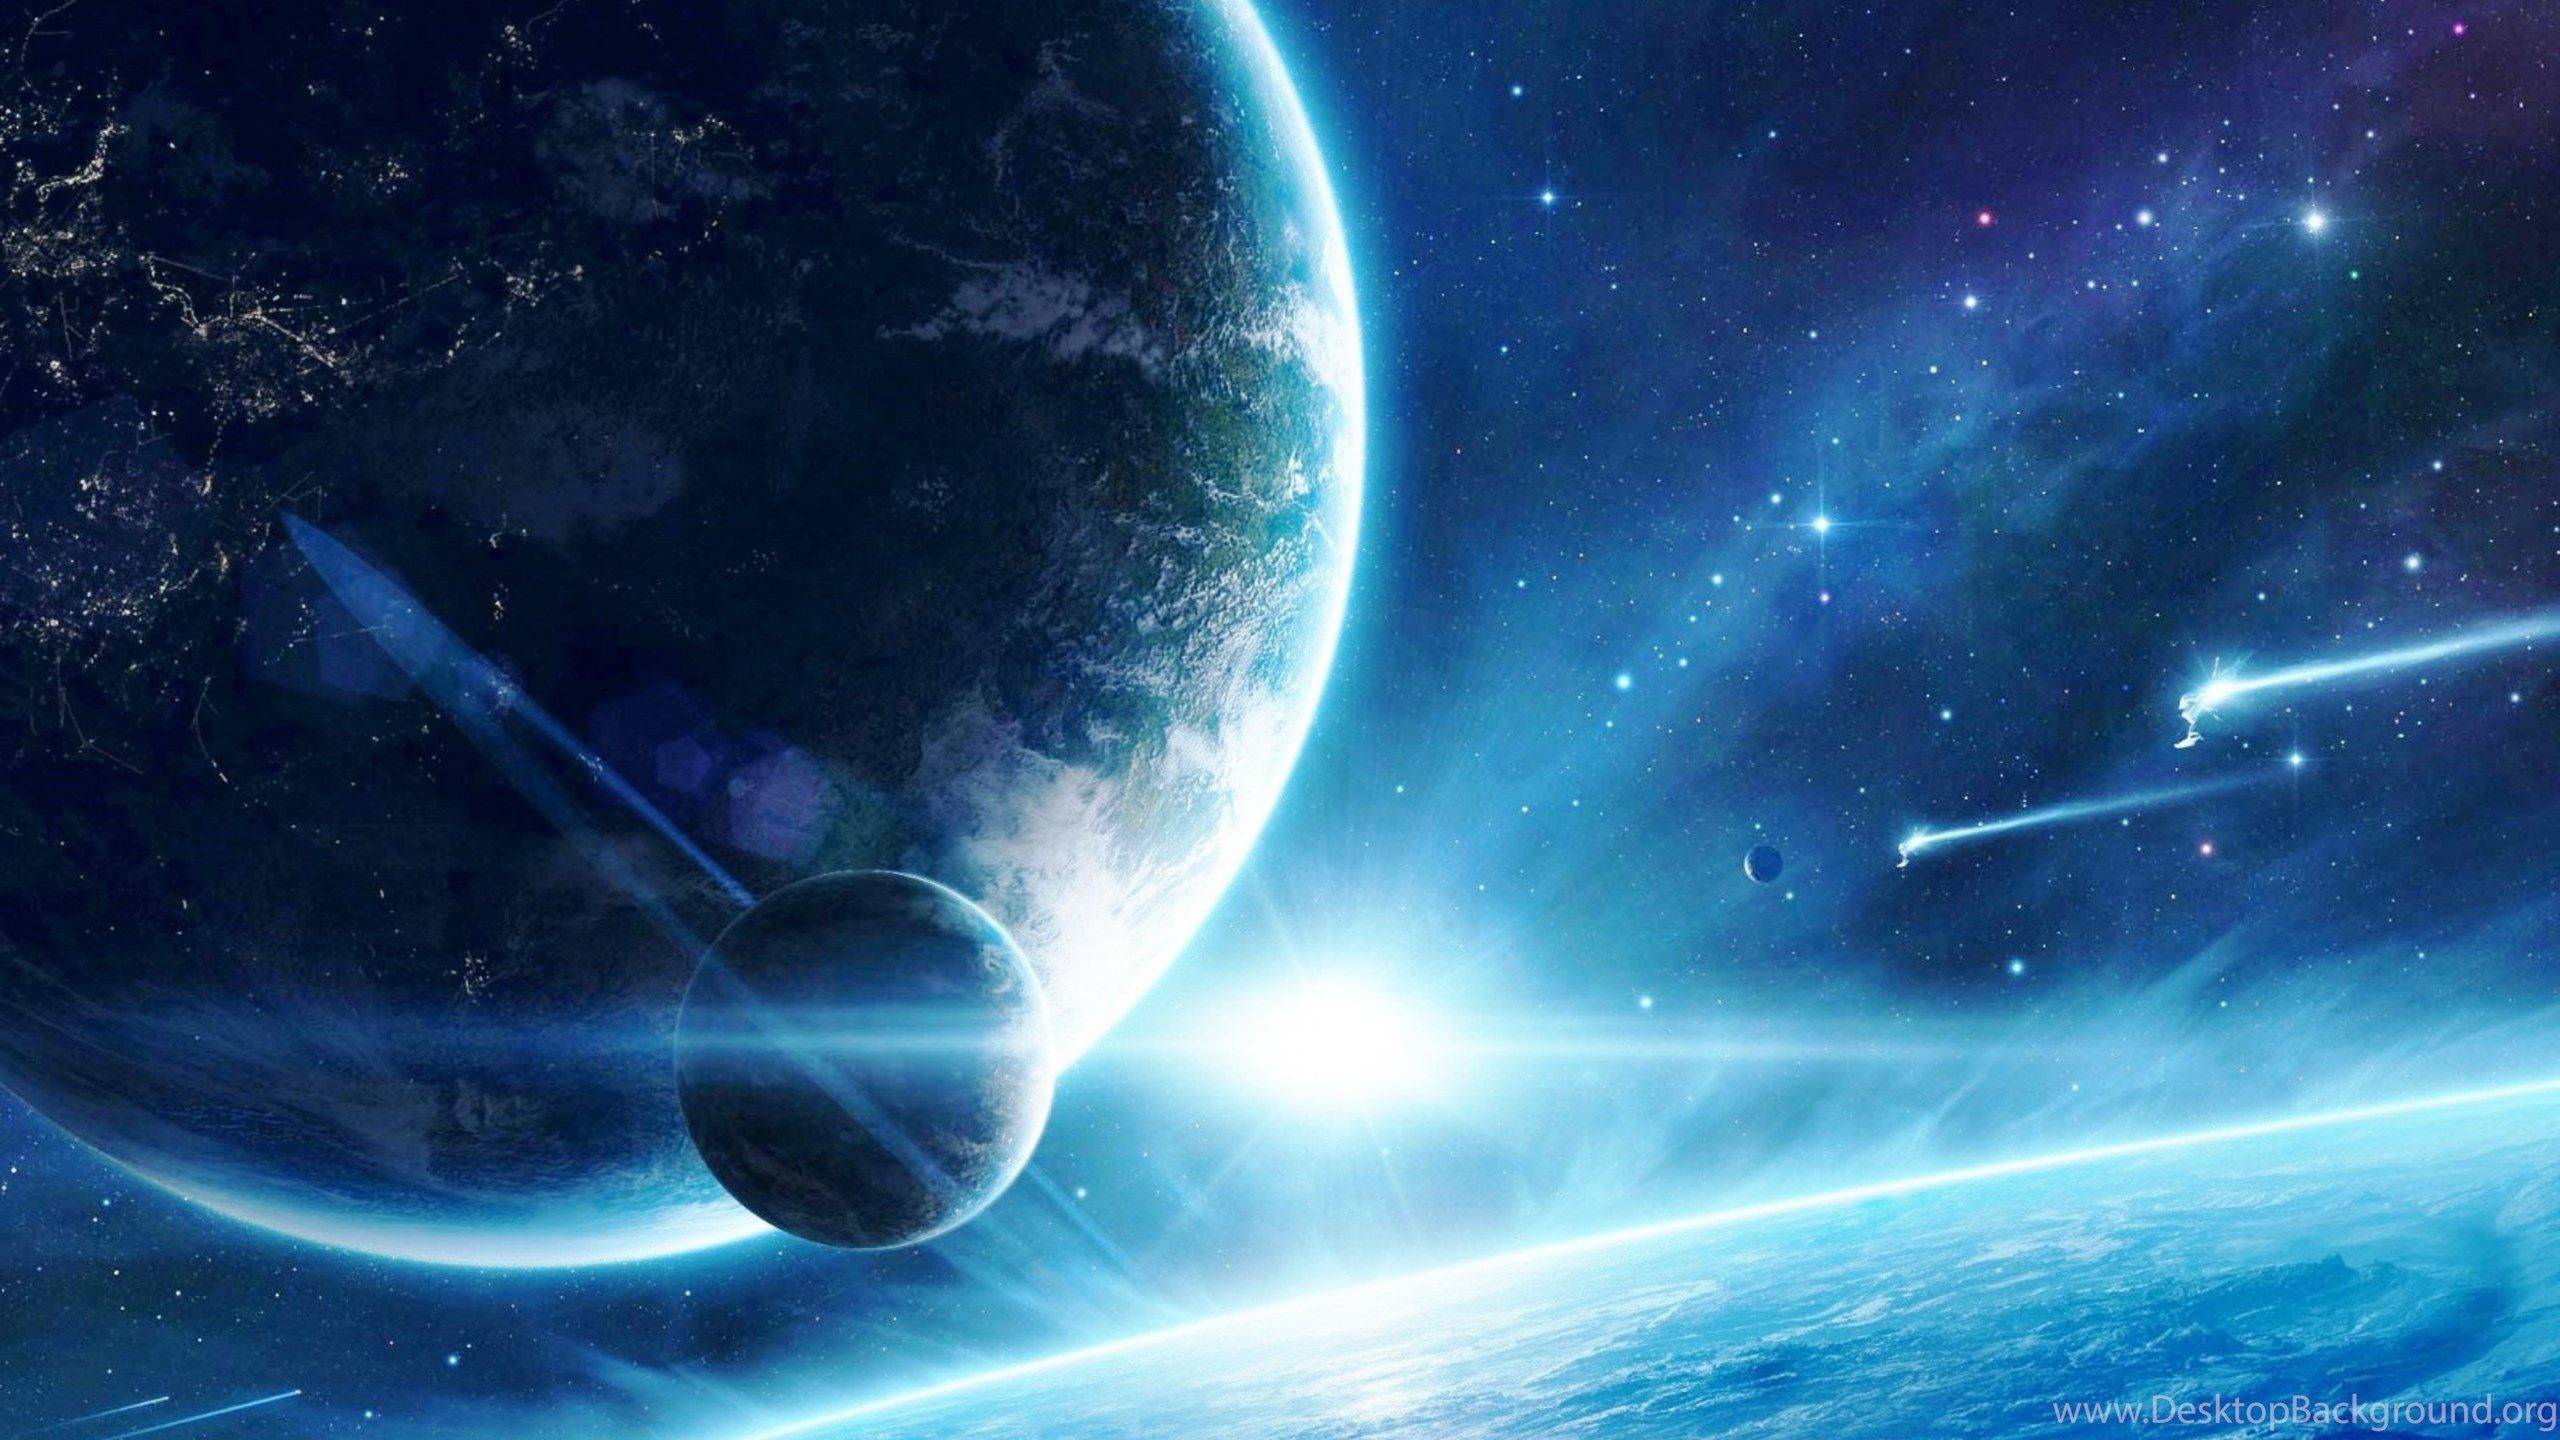 Real space wallpapers desktop for widescreen wallpapers - Real space desktop backgrounds ...